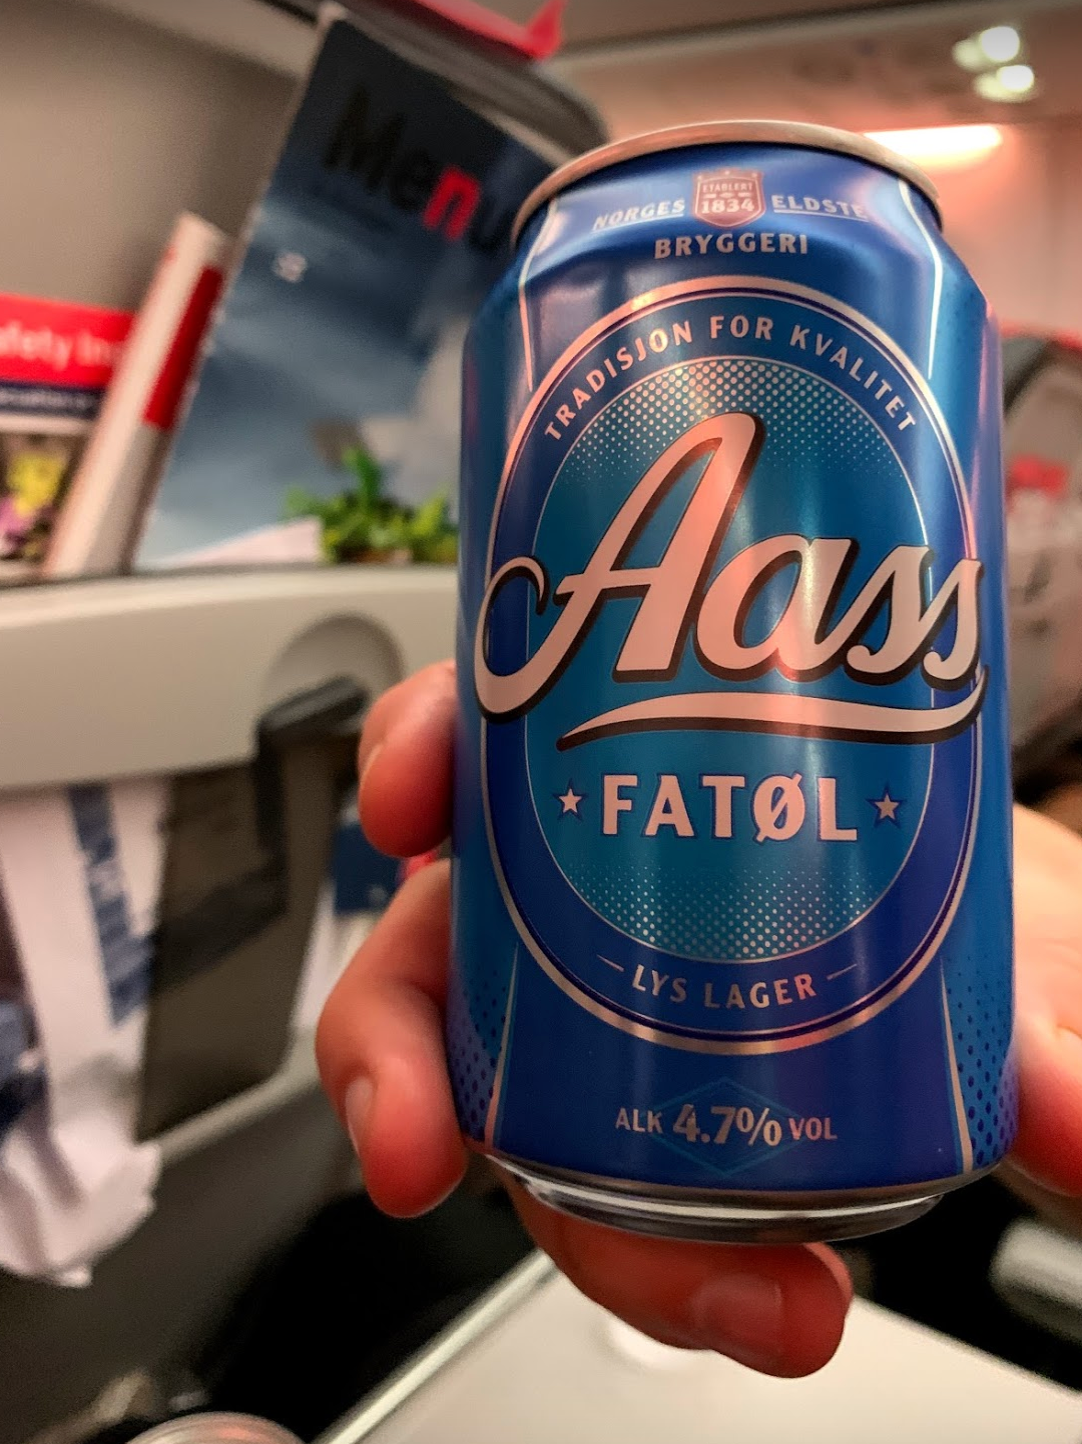 Aass beer on the way to Helsinki, Finland